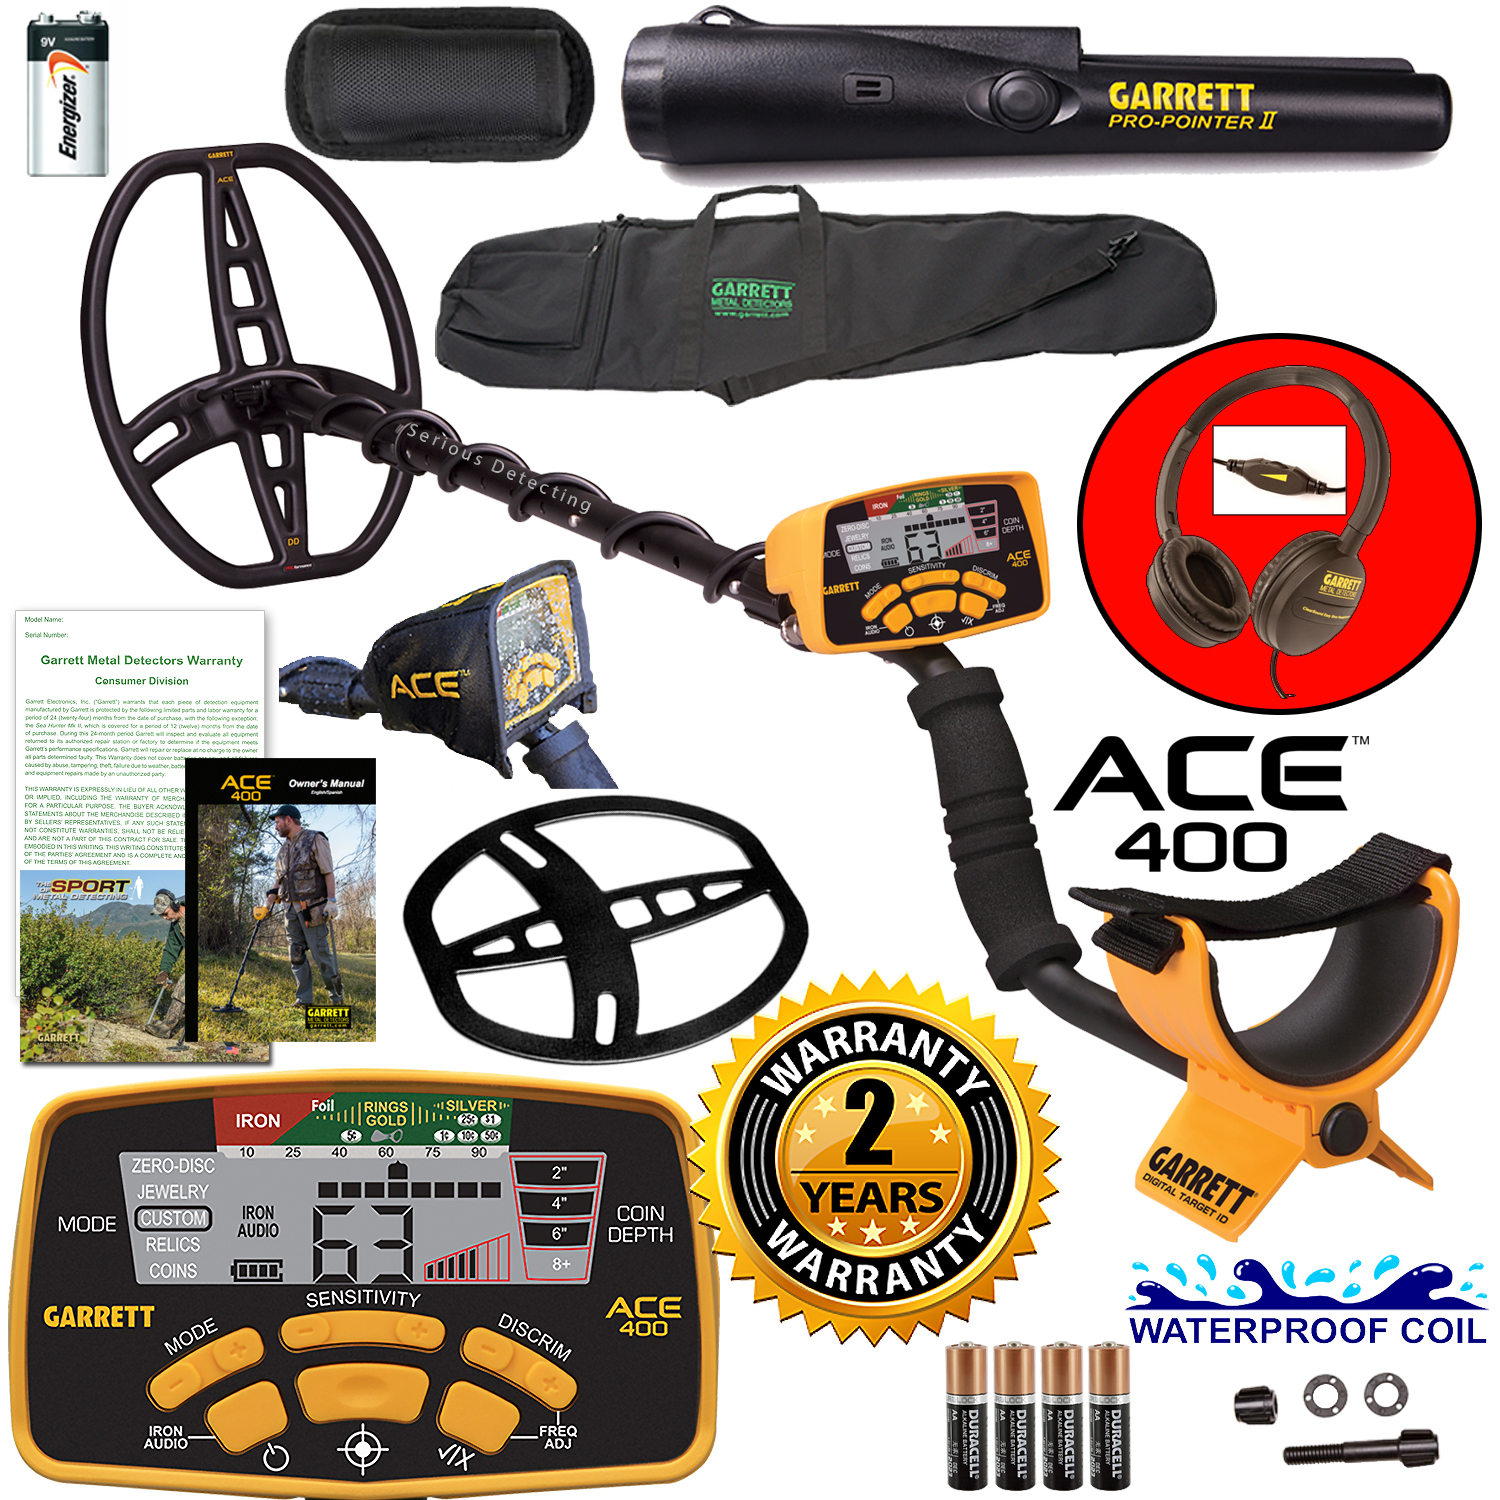 Garrett ACE 400 Metal Detector with Waterproof Coil Pro-Pointer II and Carry Bag by